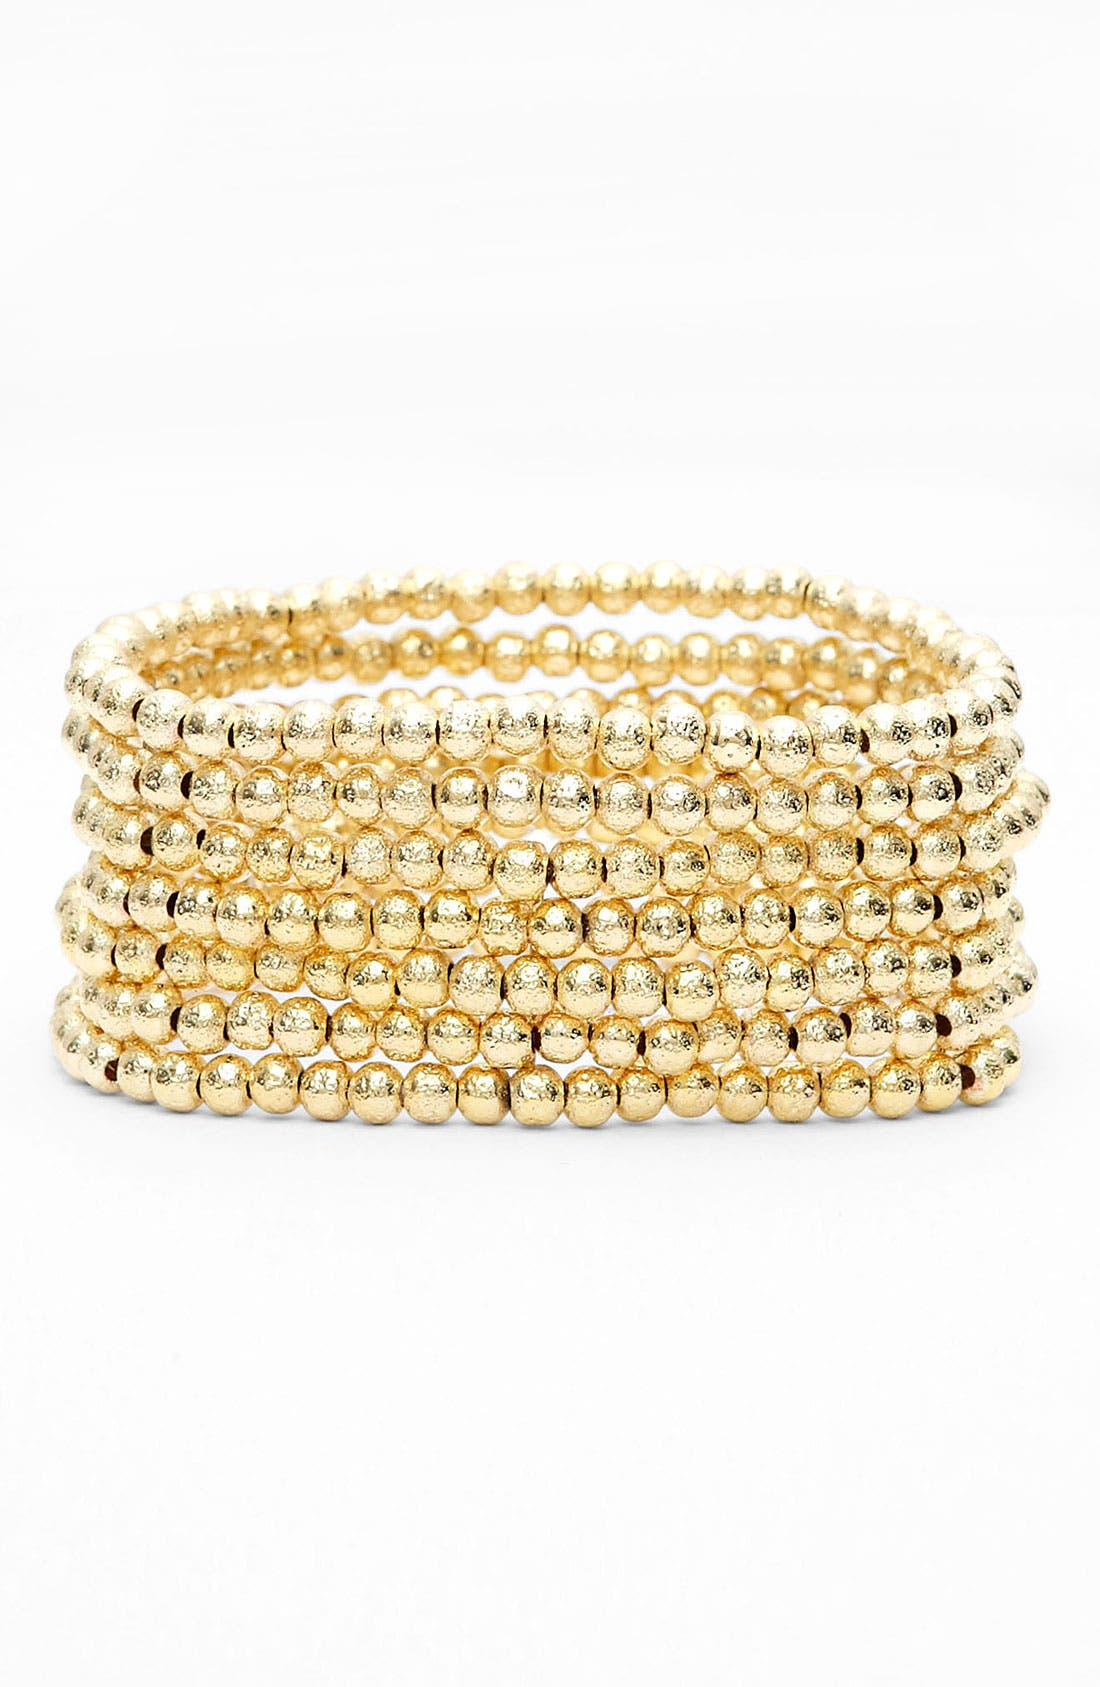 Main Image - Nordstrom 'Sand Dollar' Bead Stretch Bracelets (Set of 7)